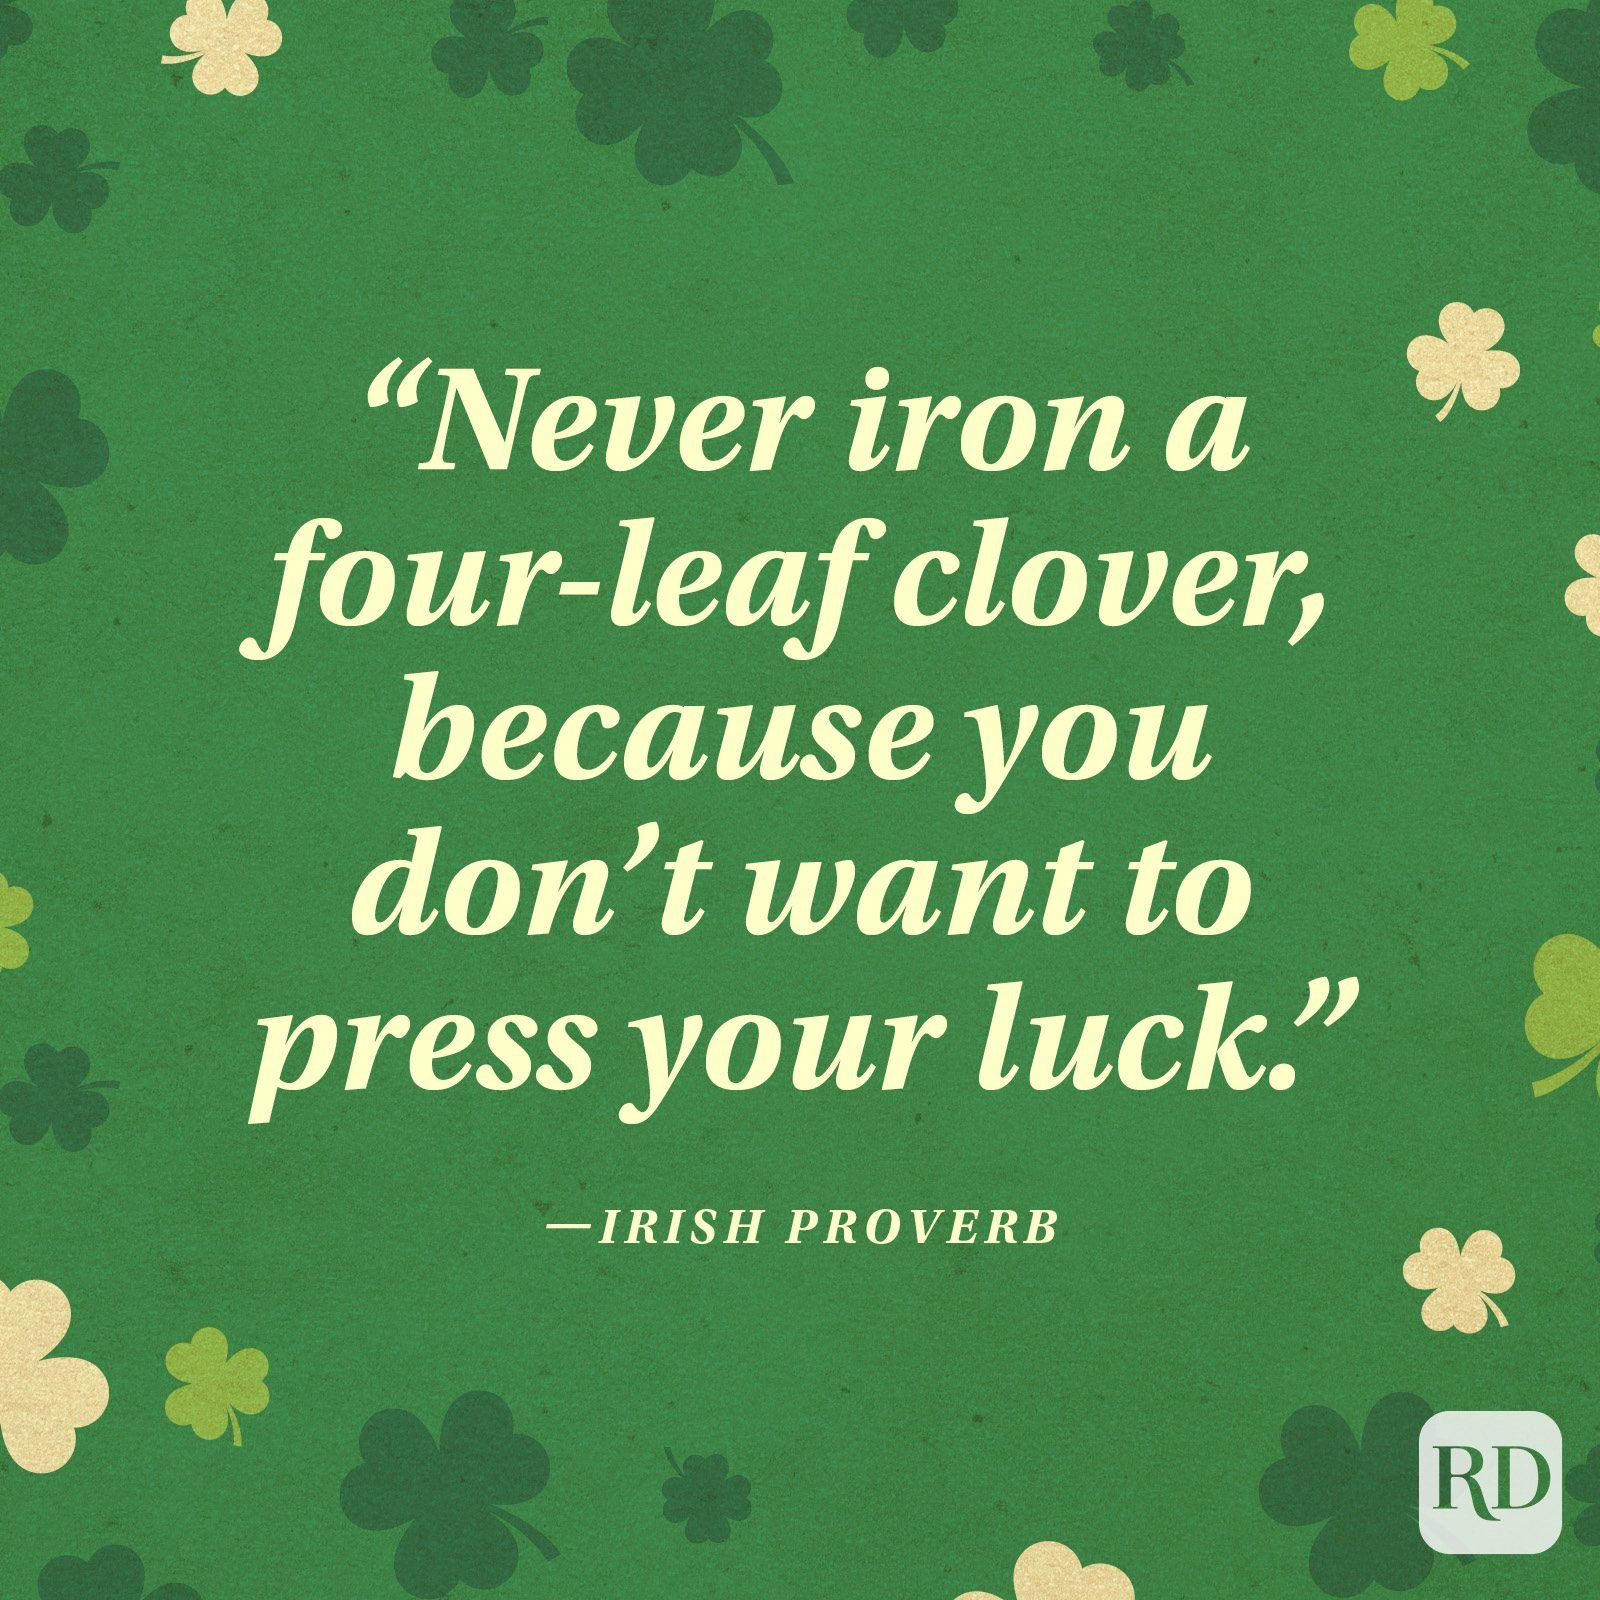 """Never iron a four-leaf clover, because you don't want to press your luck."" —Irish proverb"